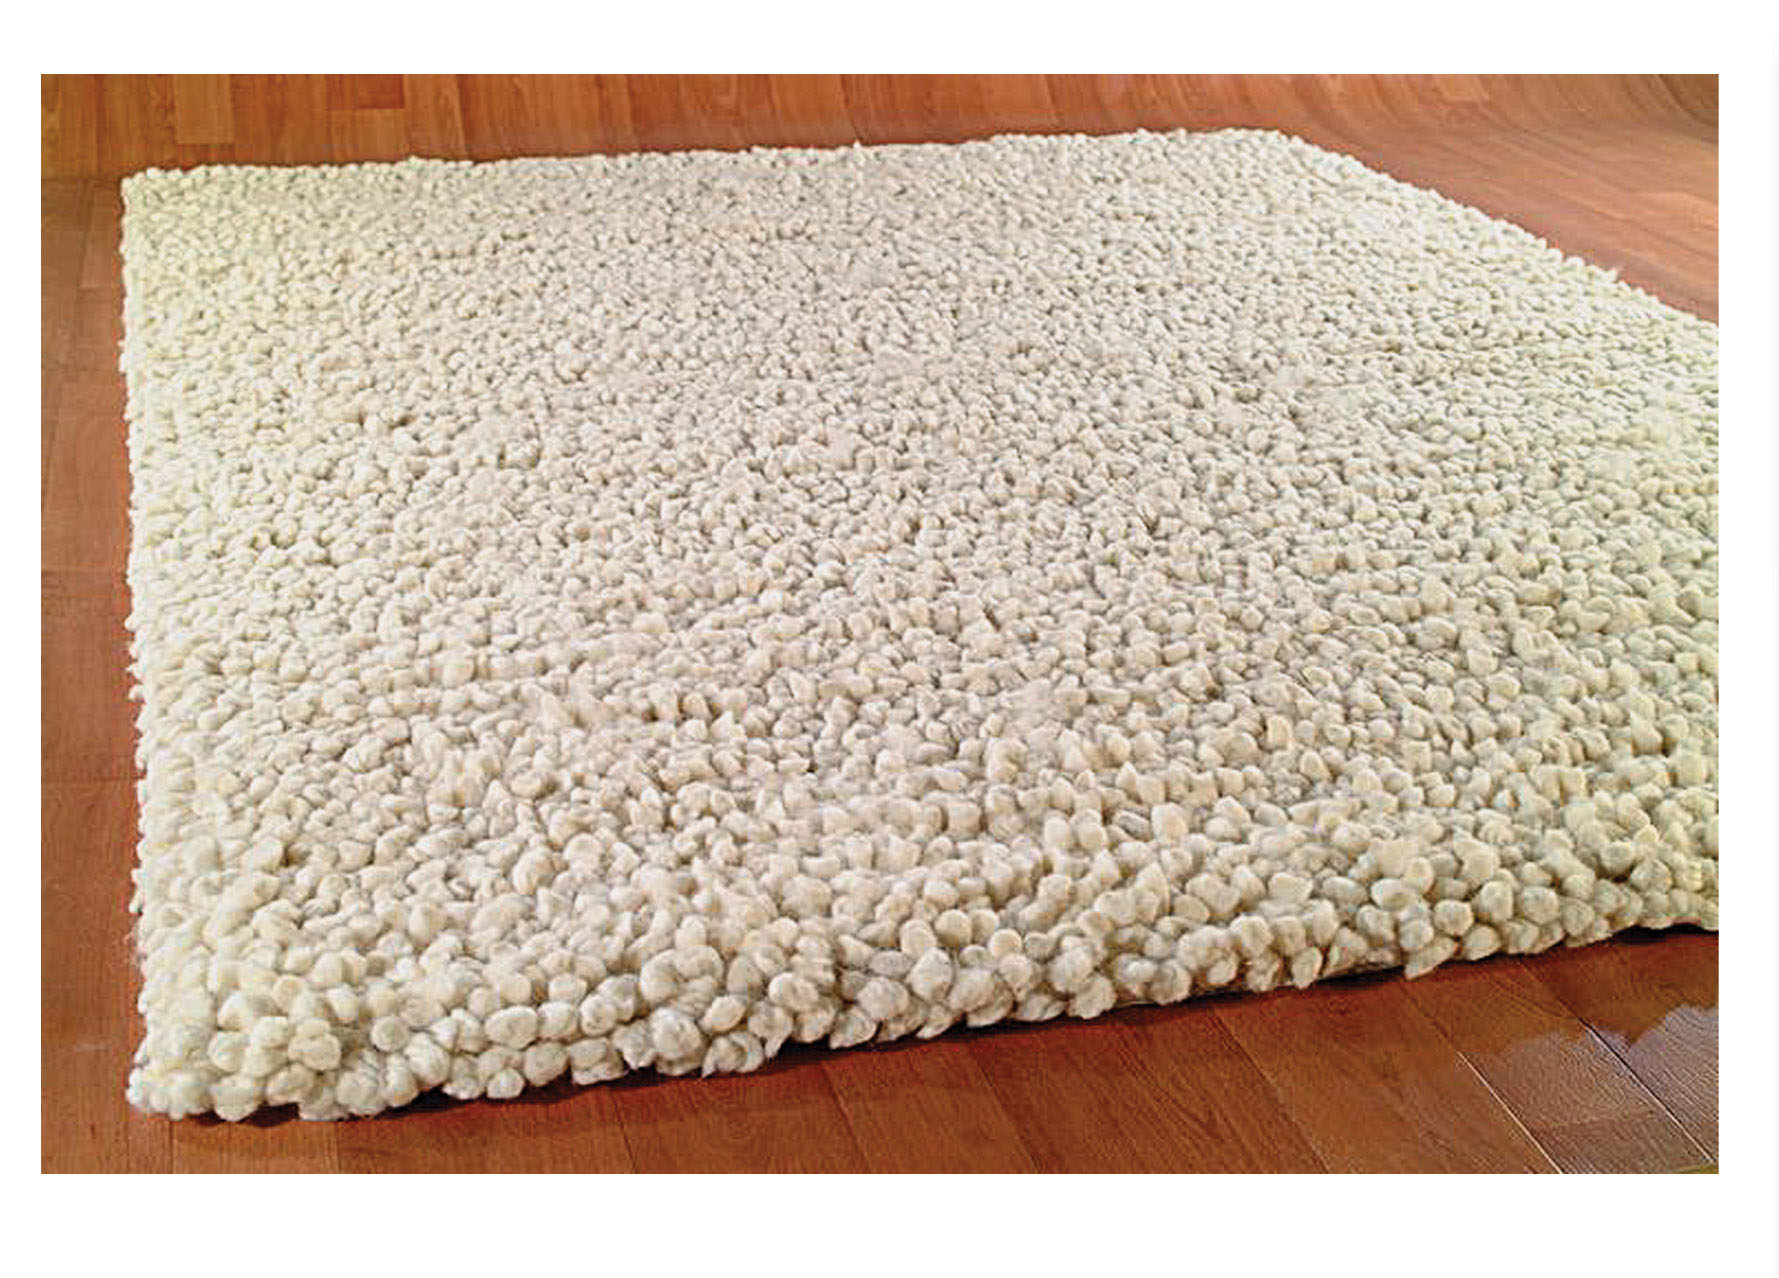 How To Clean A Wool Rug Carpet Cleaning Service Vancouver